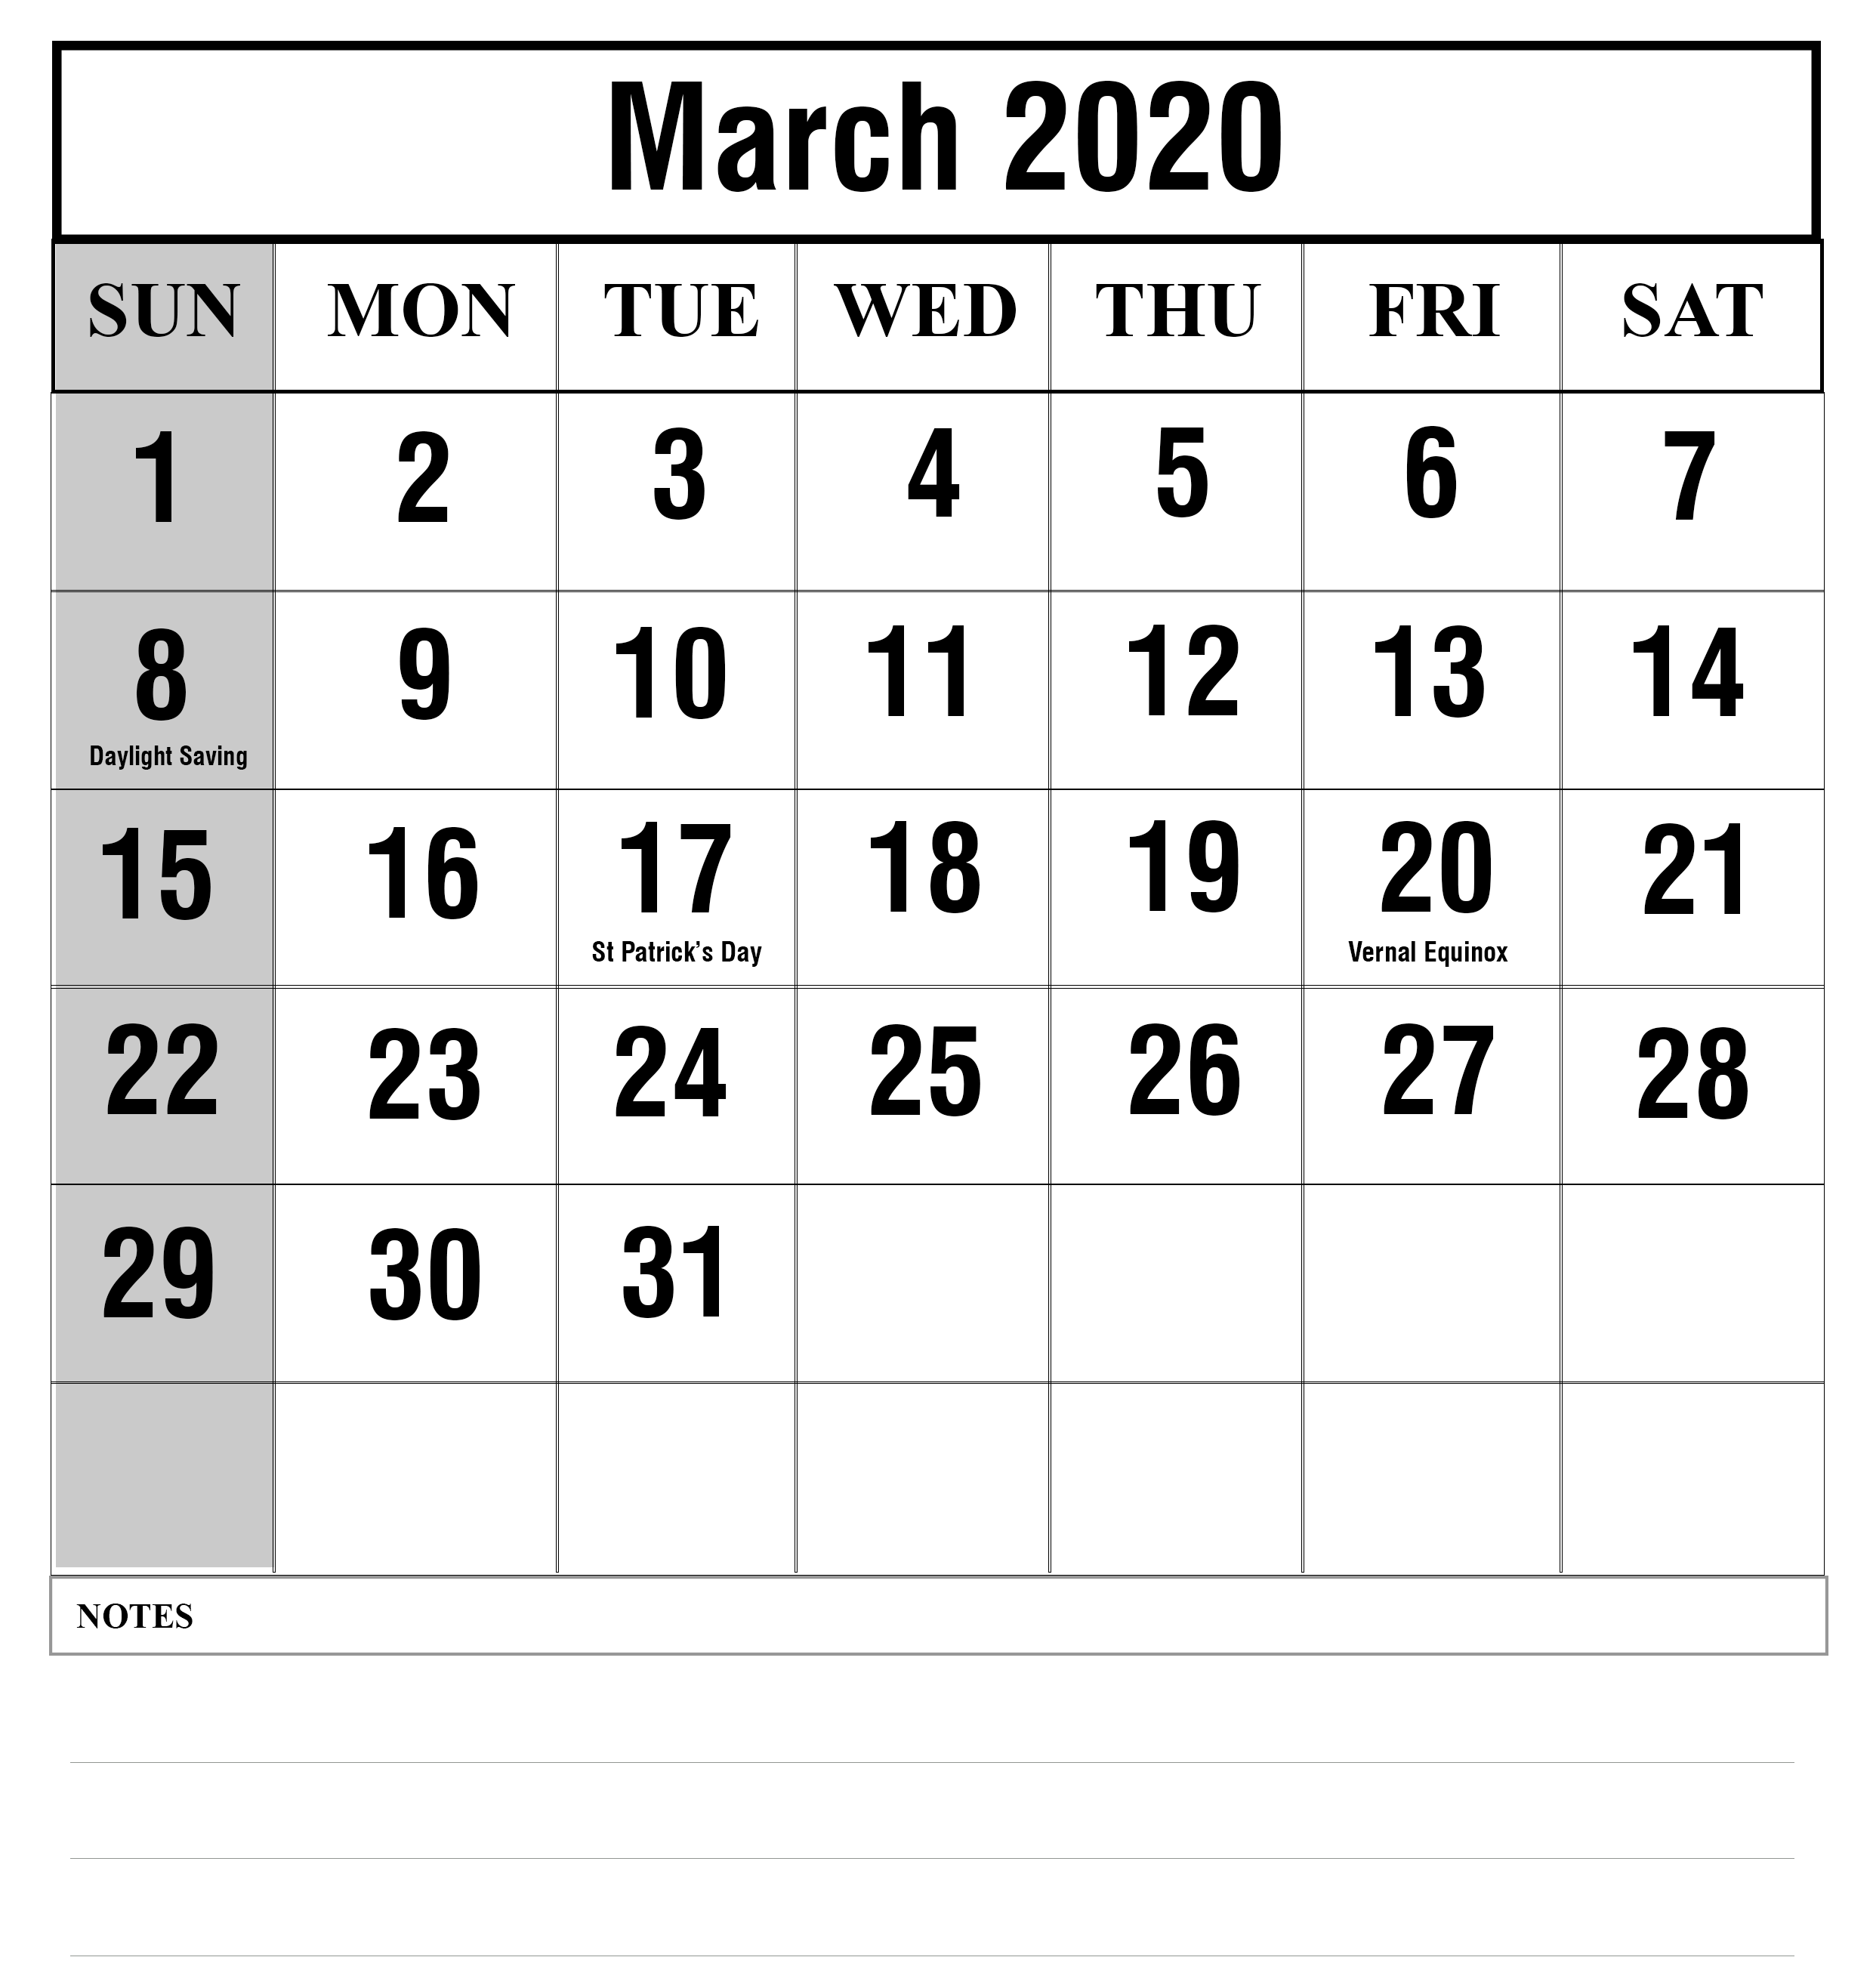 Holidays March 2020 Calendar